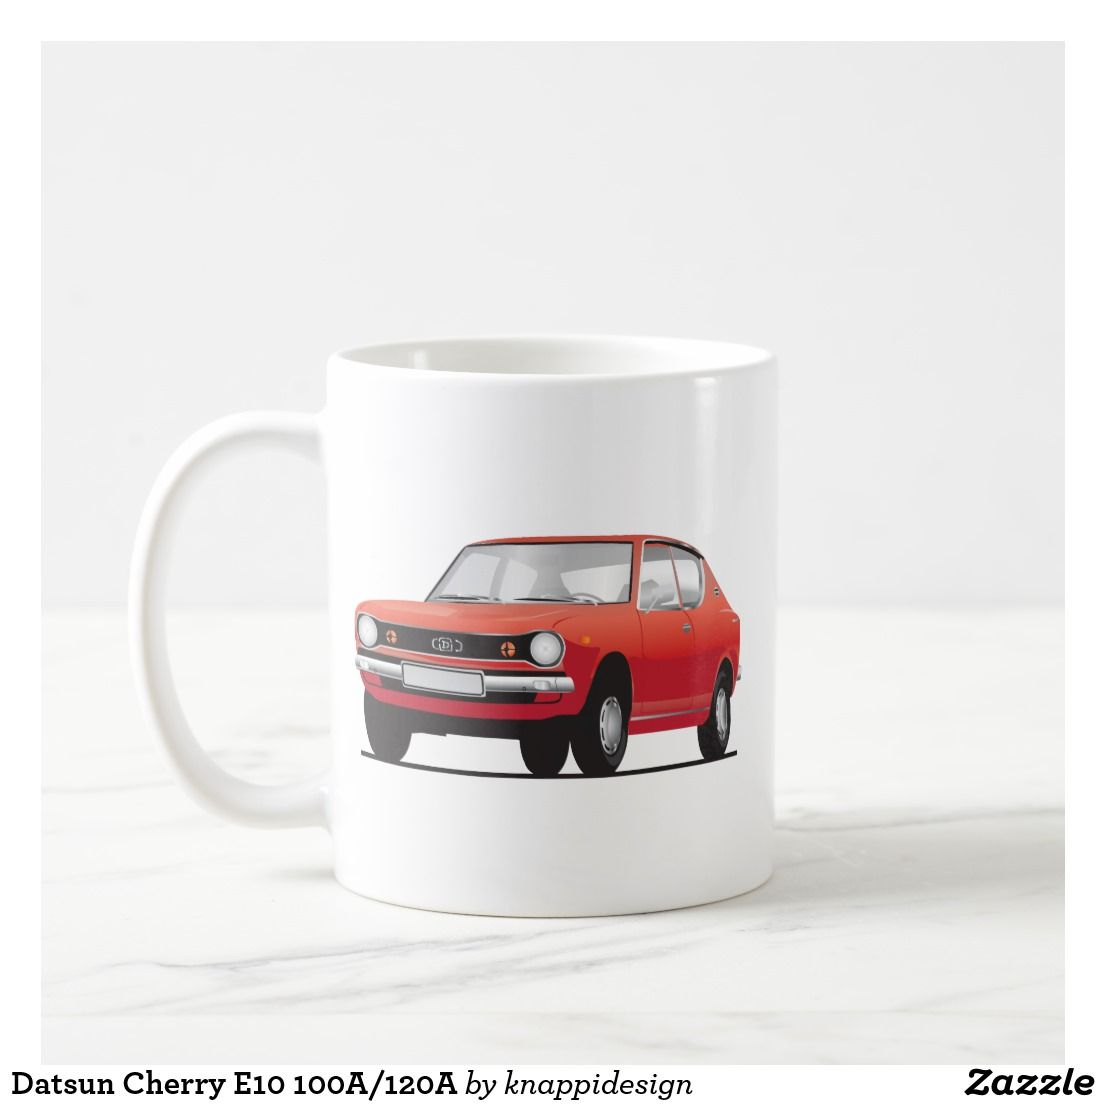 Datsun Cherry E10 100A/120A in red, two images per coffee mug.  #datsun #datsuncherry #datsun100A #datsun #datsun120A #datsune10 #70s #1970s #japan #japanese #automobile #cars #classiccars #carillustrations #silver #smallcar #coffeemug #kaffamugg #muki #auto #cherry #datsunnissan